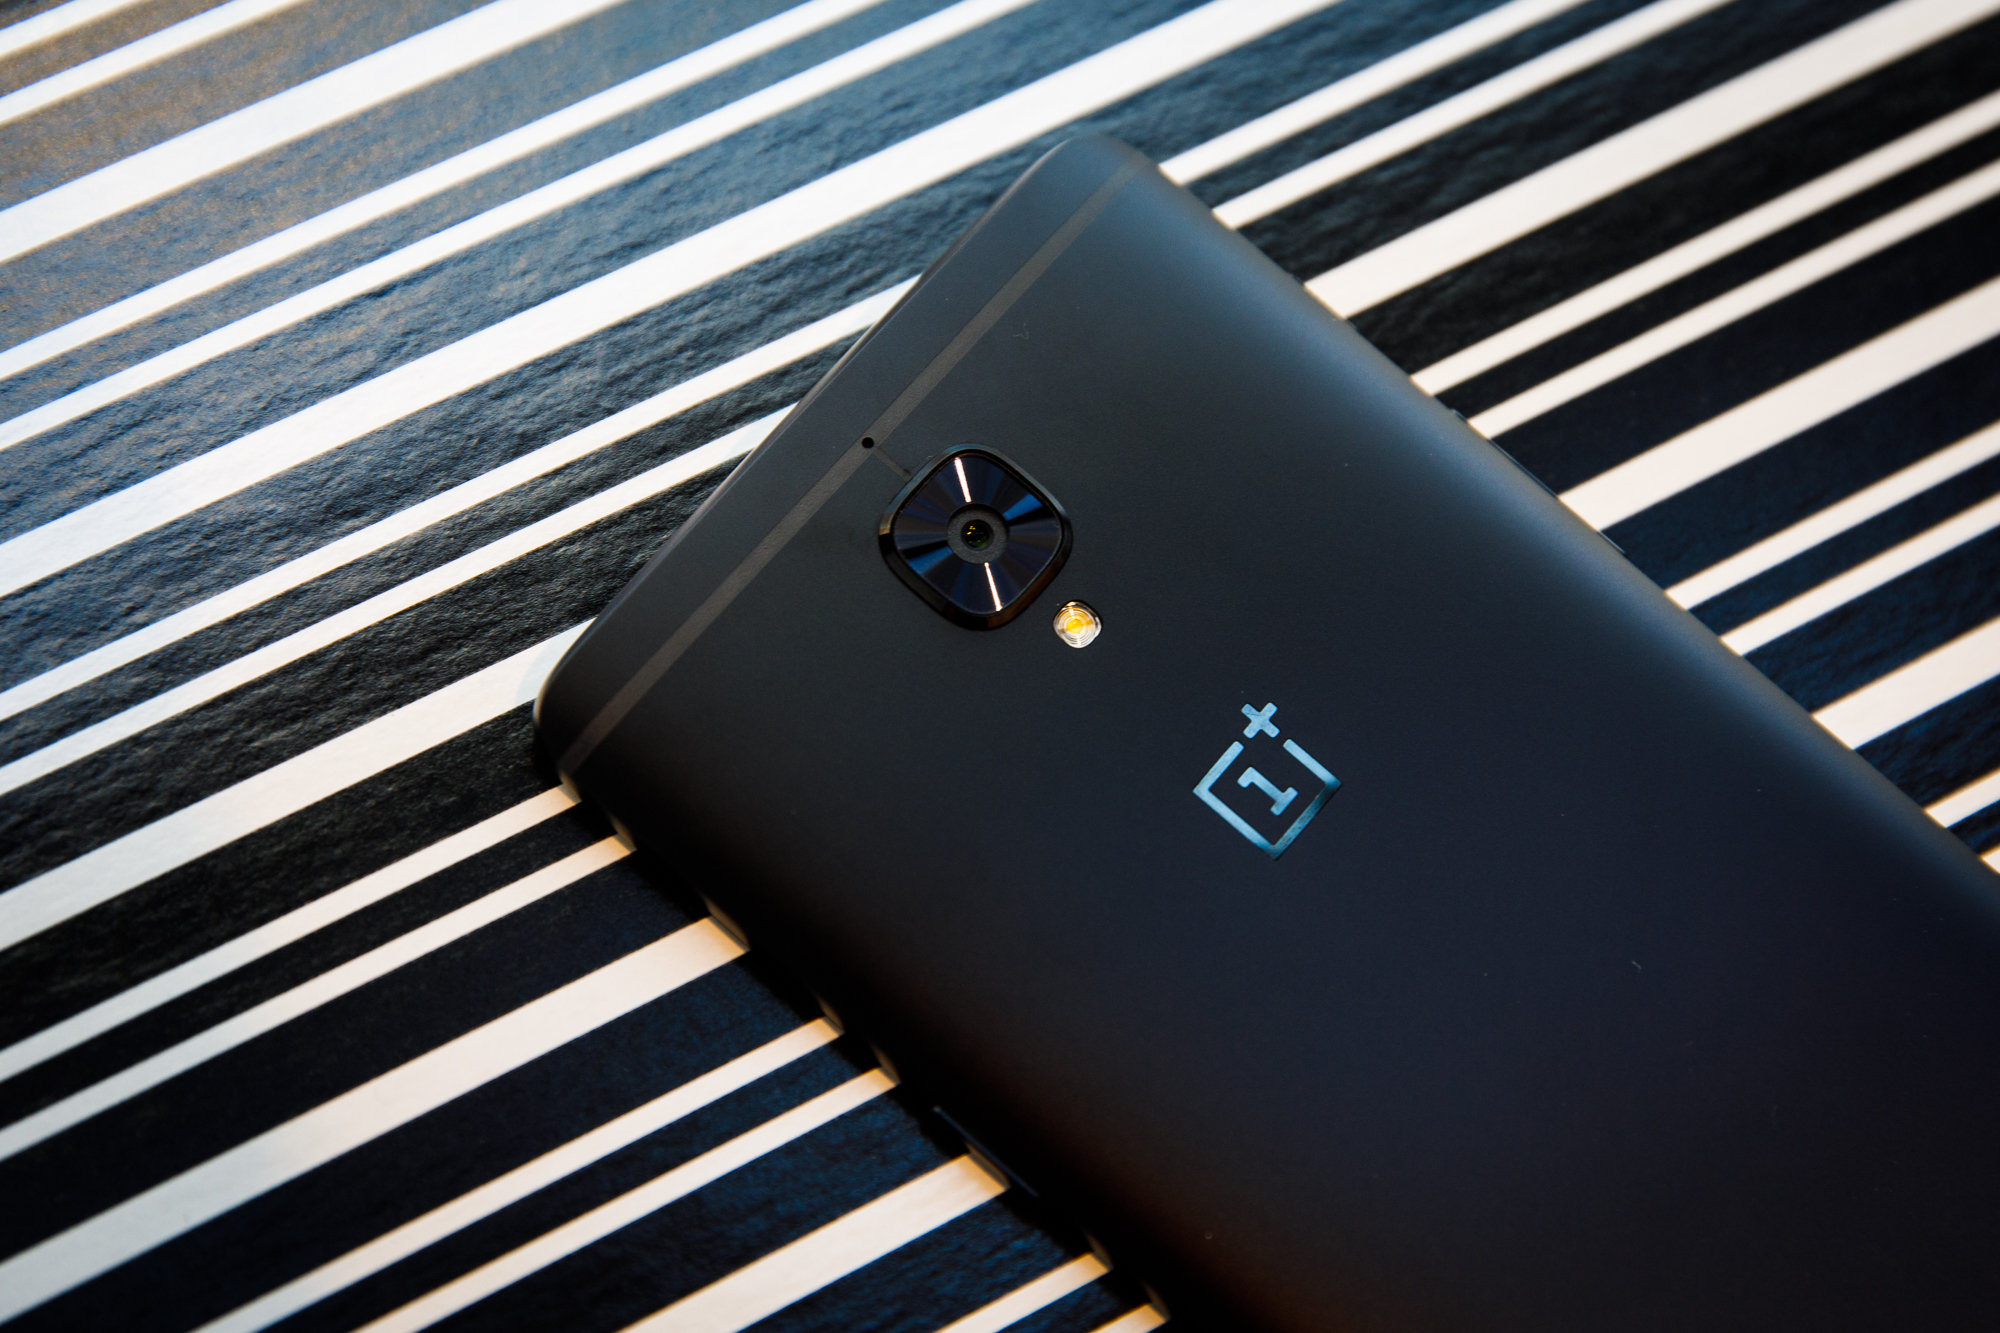 OnePlus 3T in black